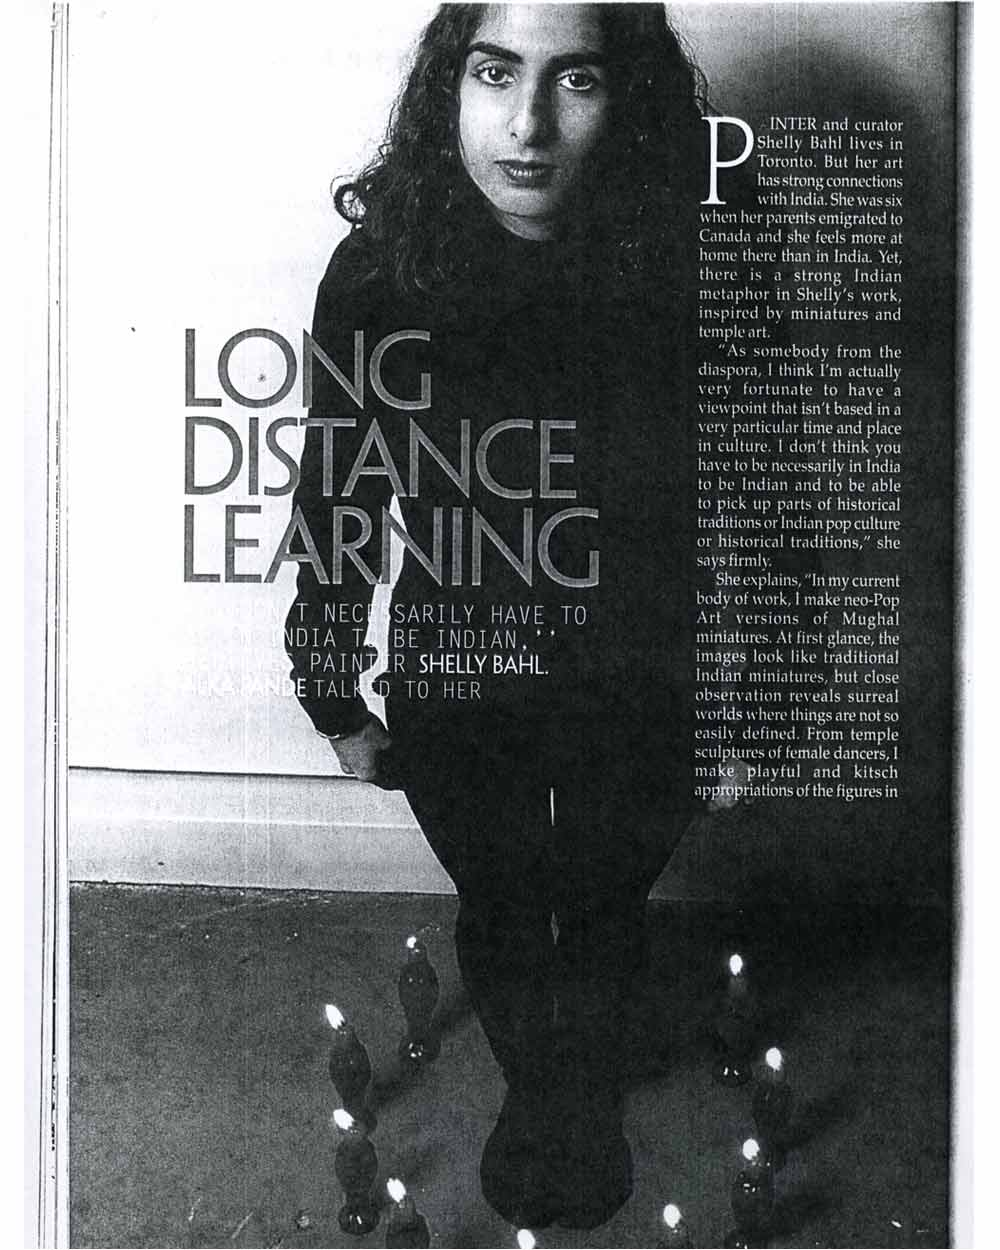 Long Distance Learning, pg 1